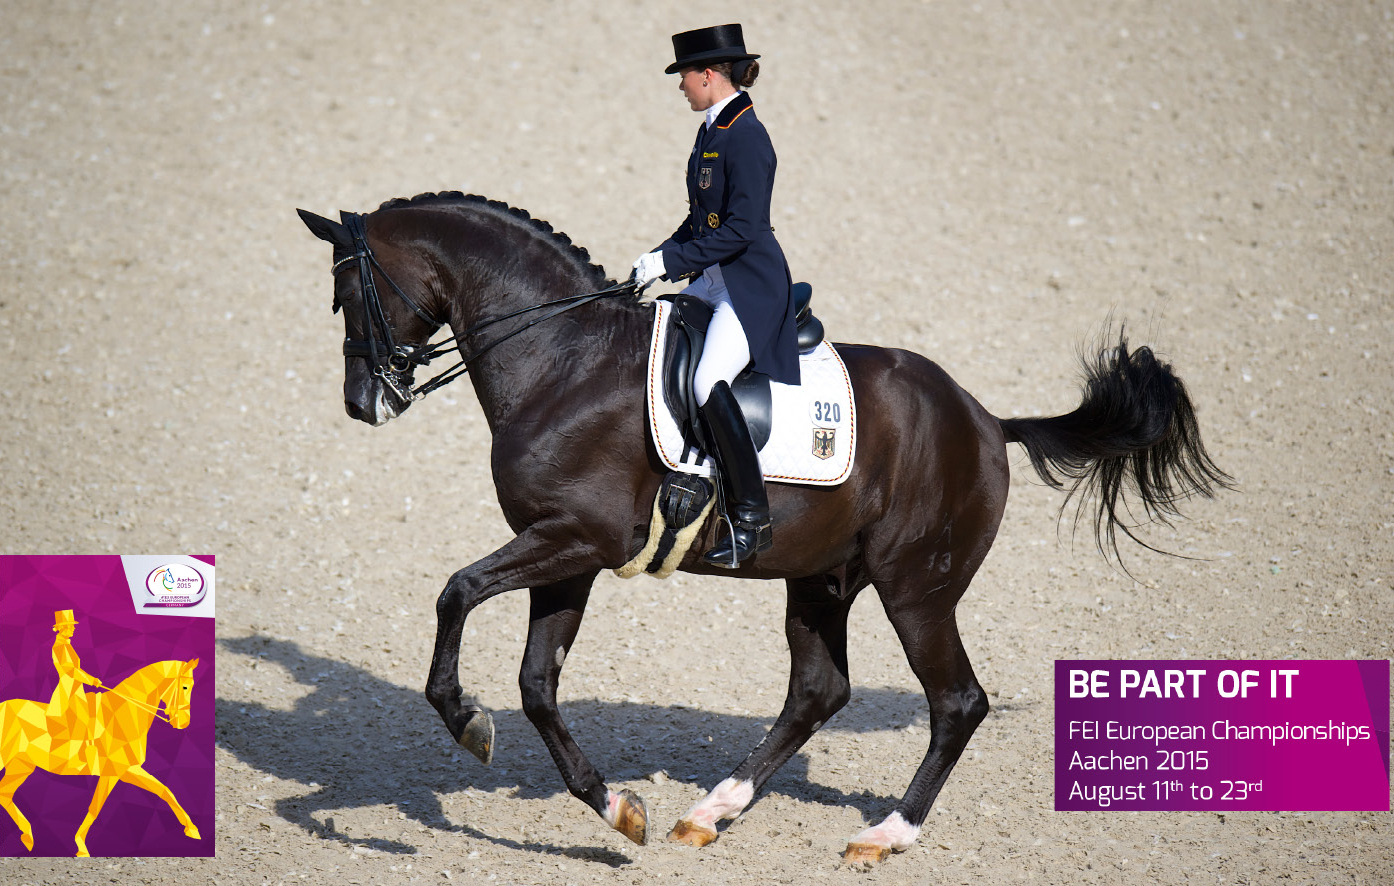 Equestrian Events Worldwide